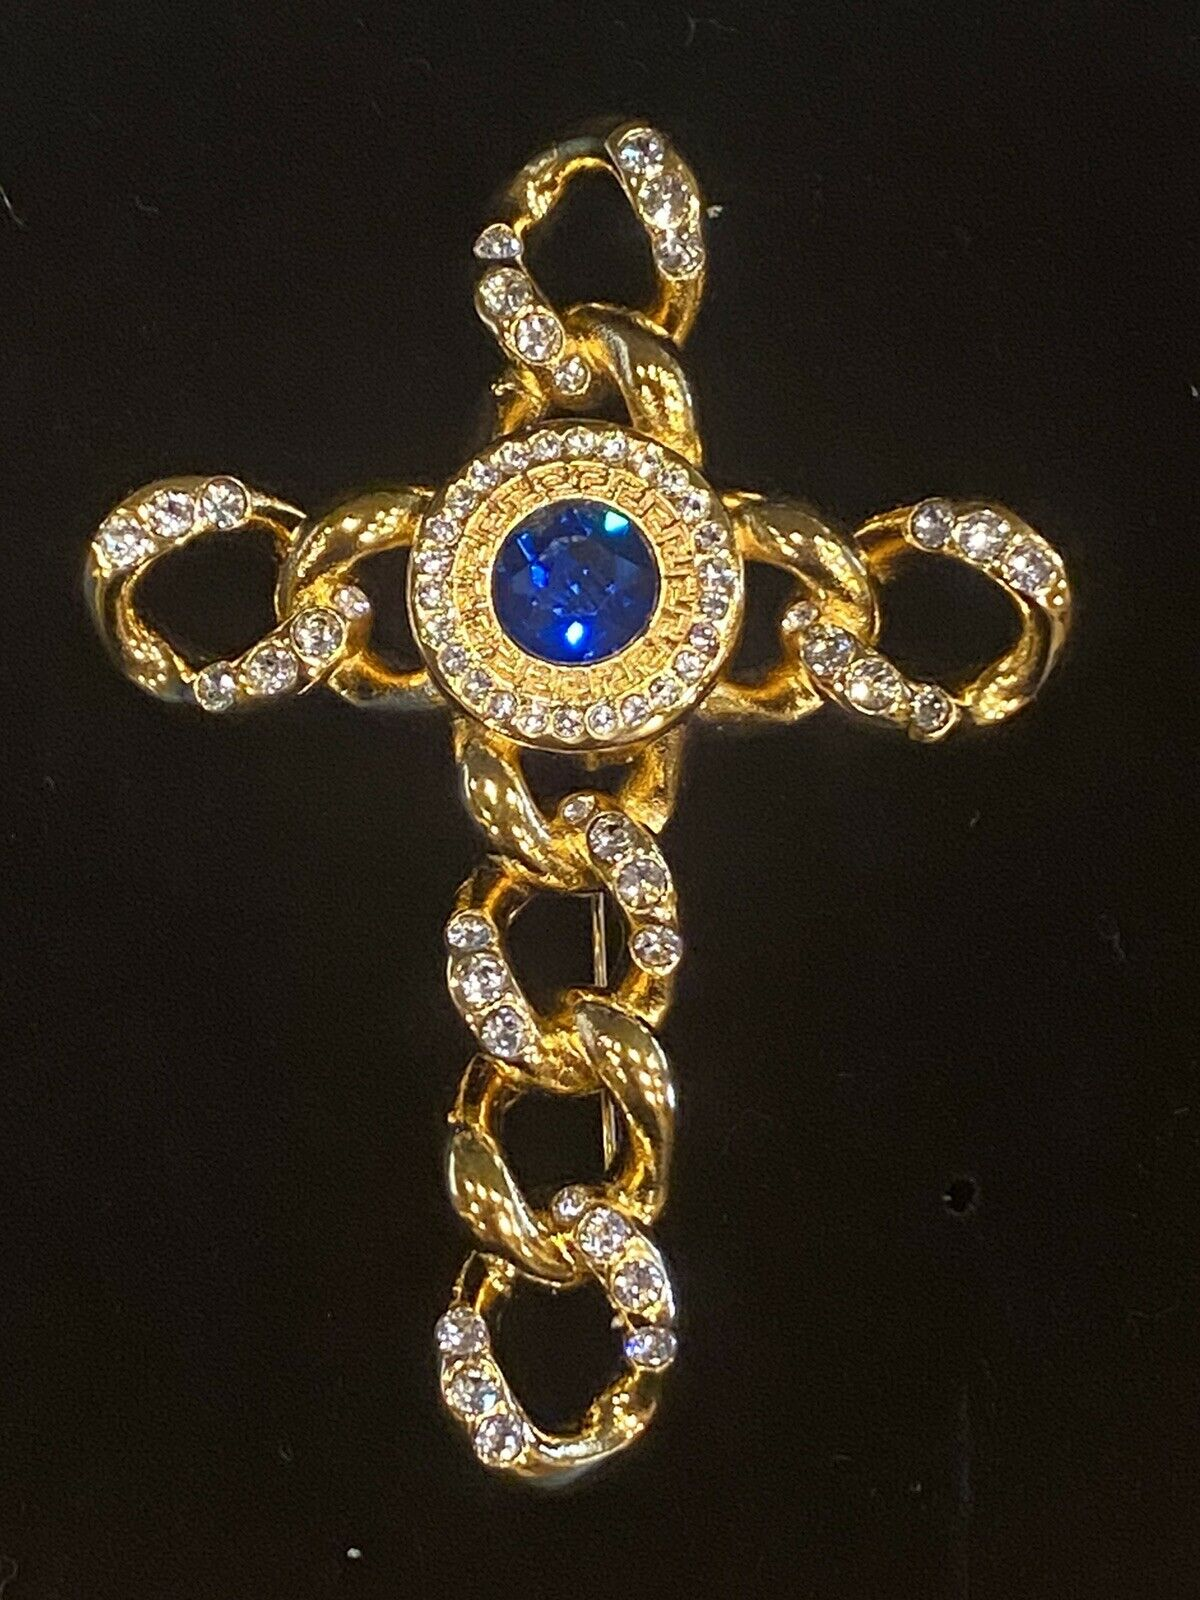 SIGNED VINTAGE GOLD PLATED GIANNI VERSACE CRYSTAL… - image 2